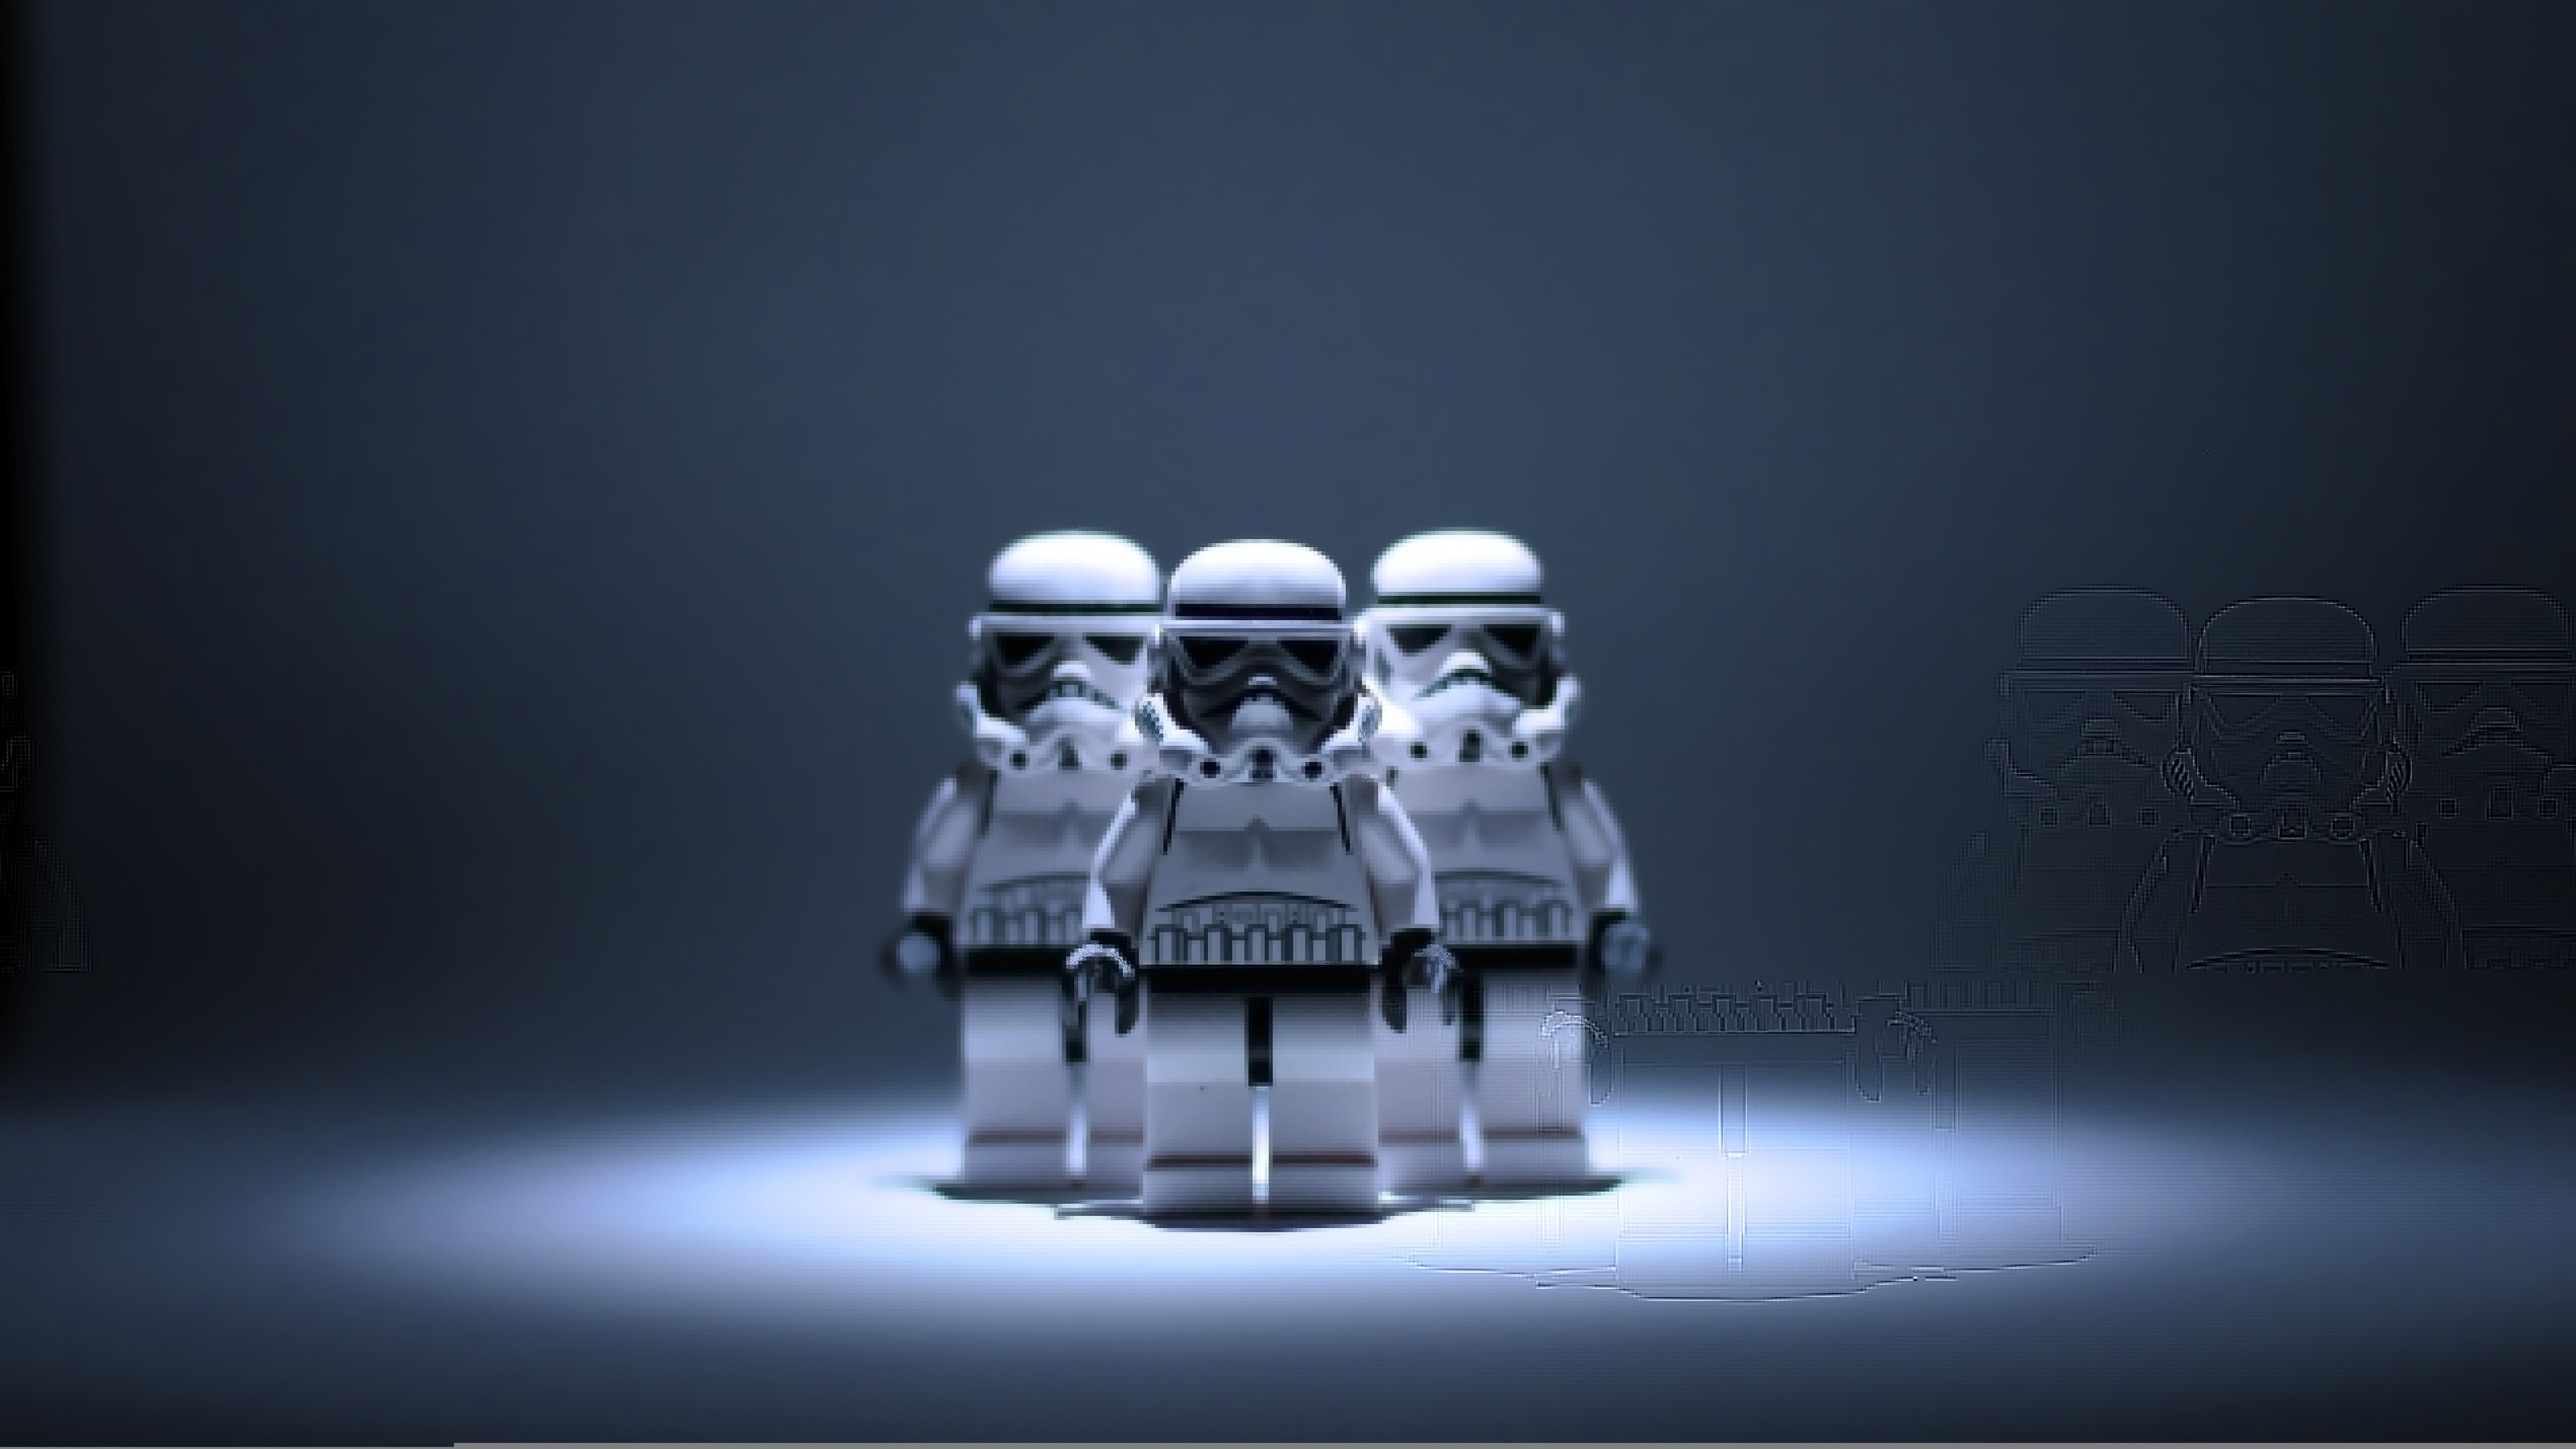 lego toys stormtroopers star wars wallpapers photos pictures 5084x2860